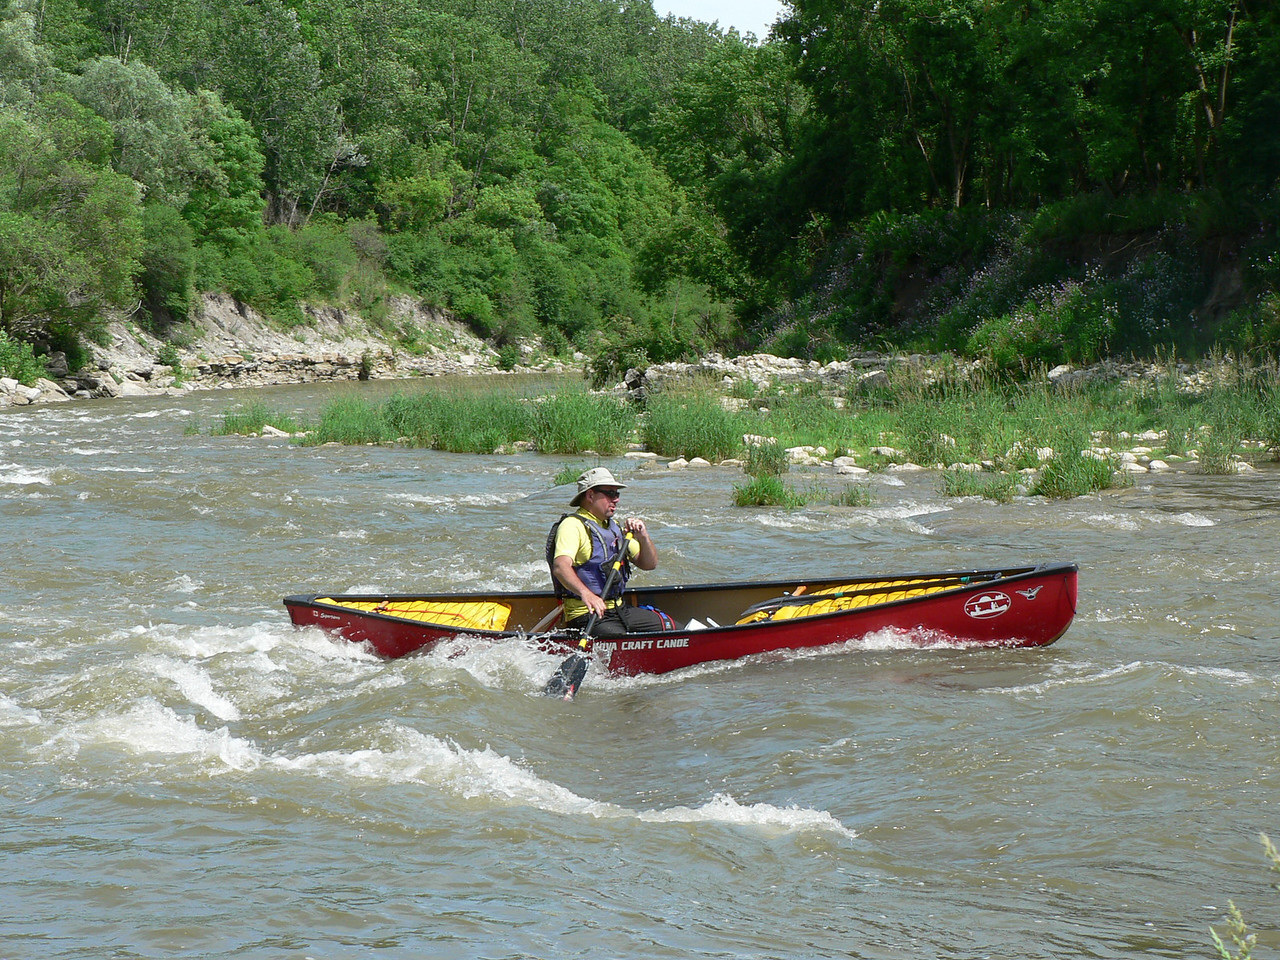 Nith River, Summer 2010 Photos by: Jean Lefebvre